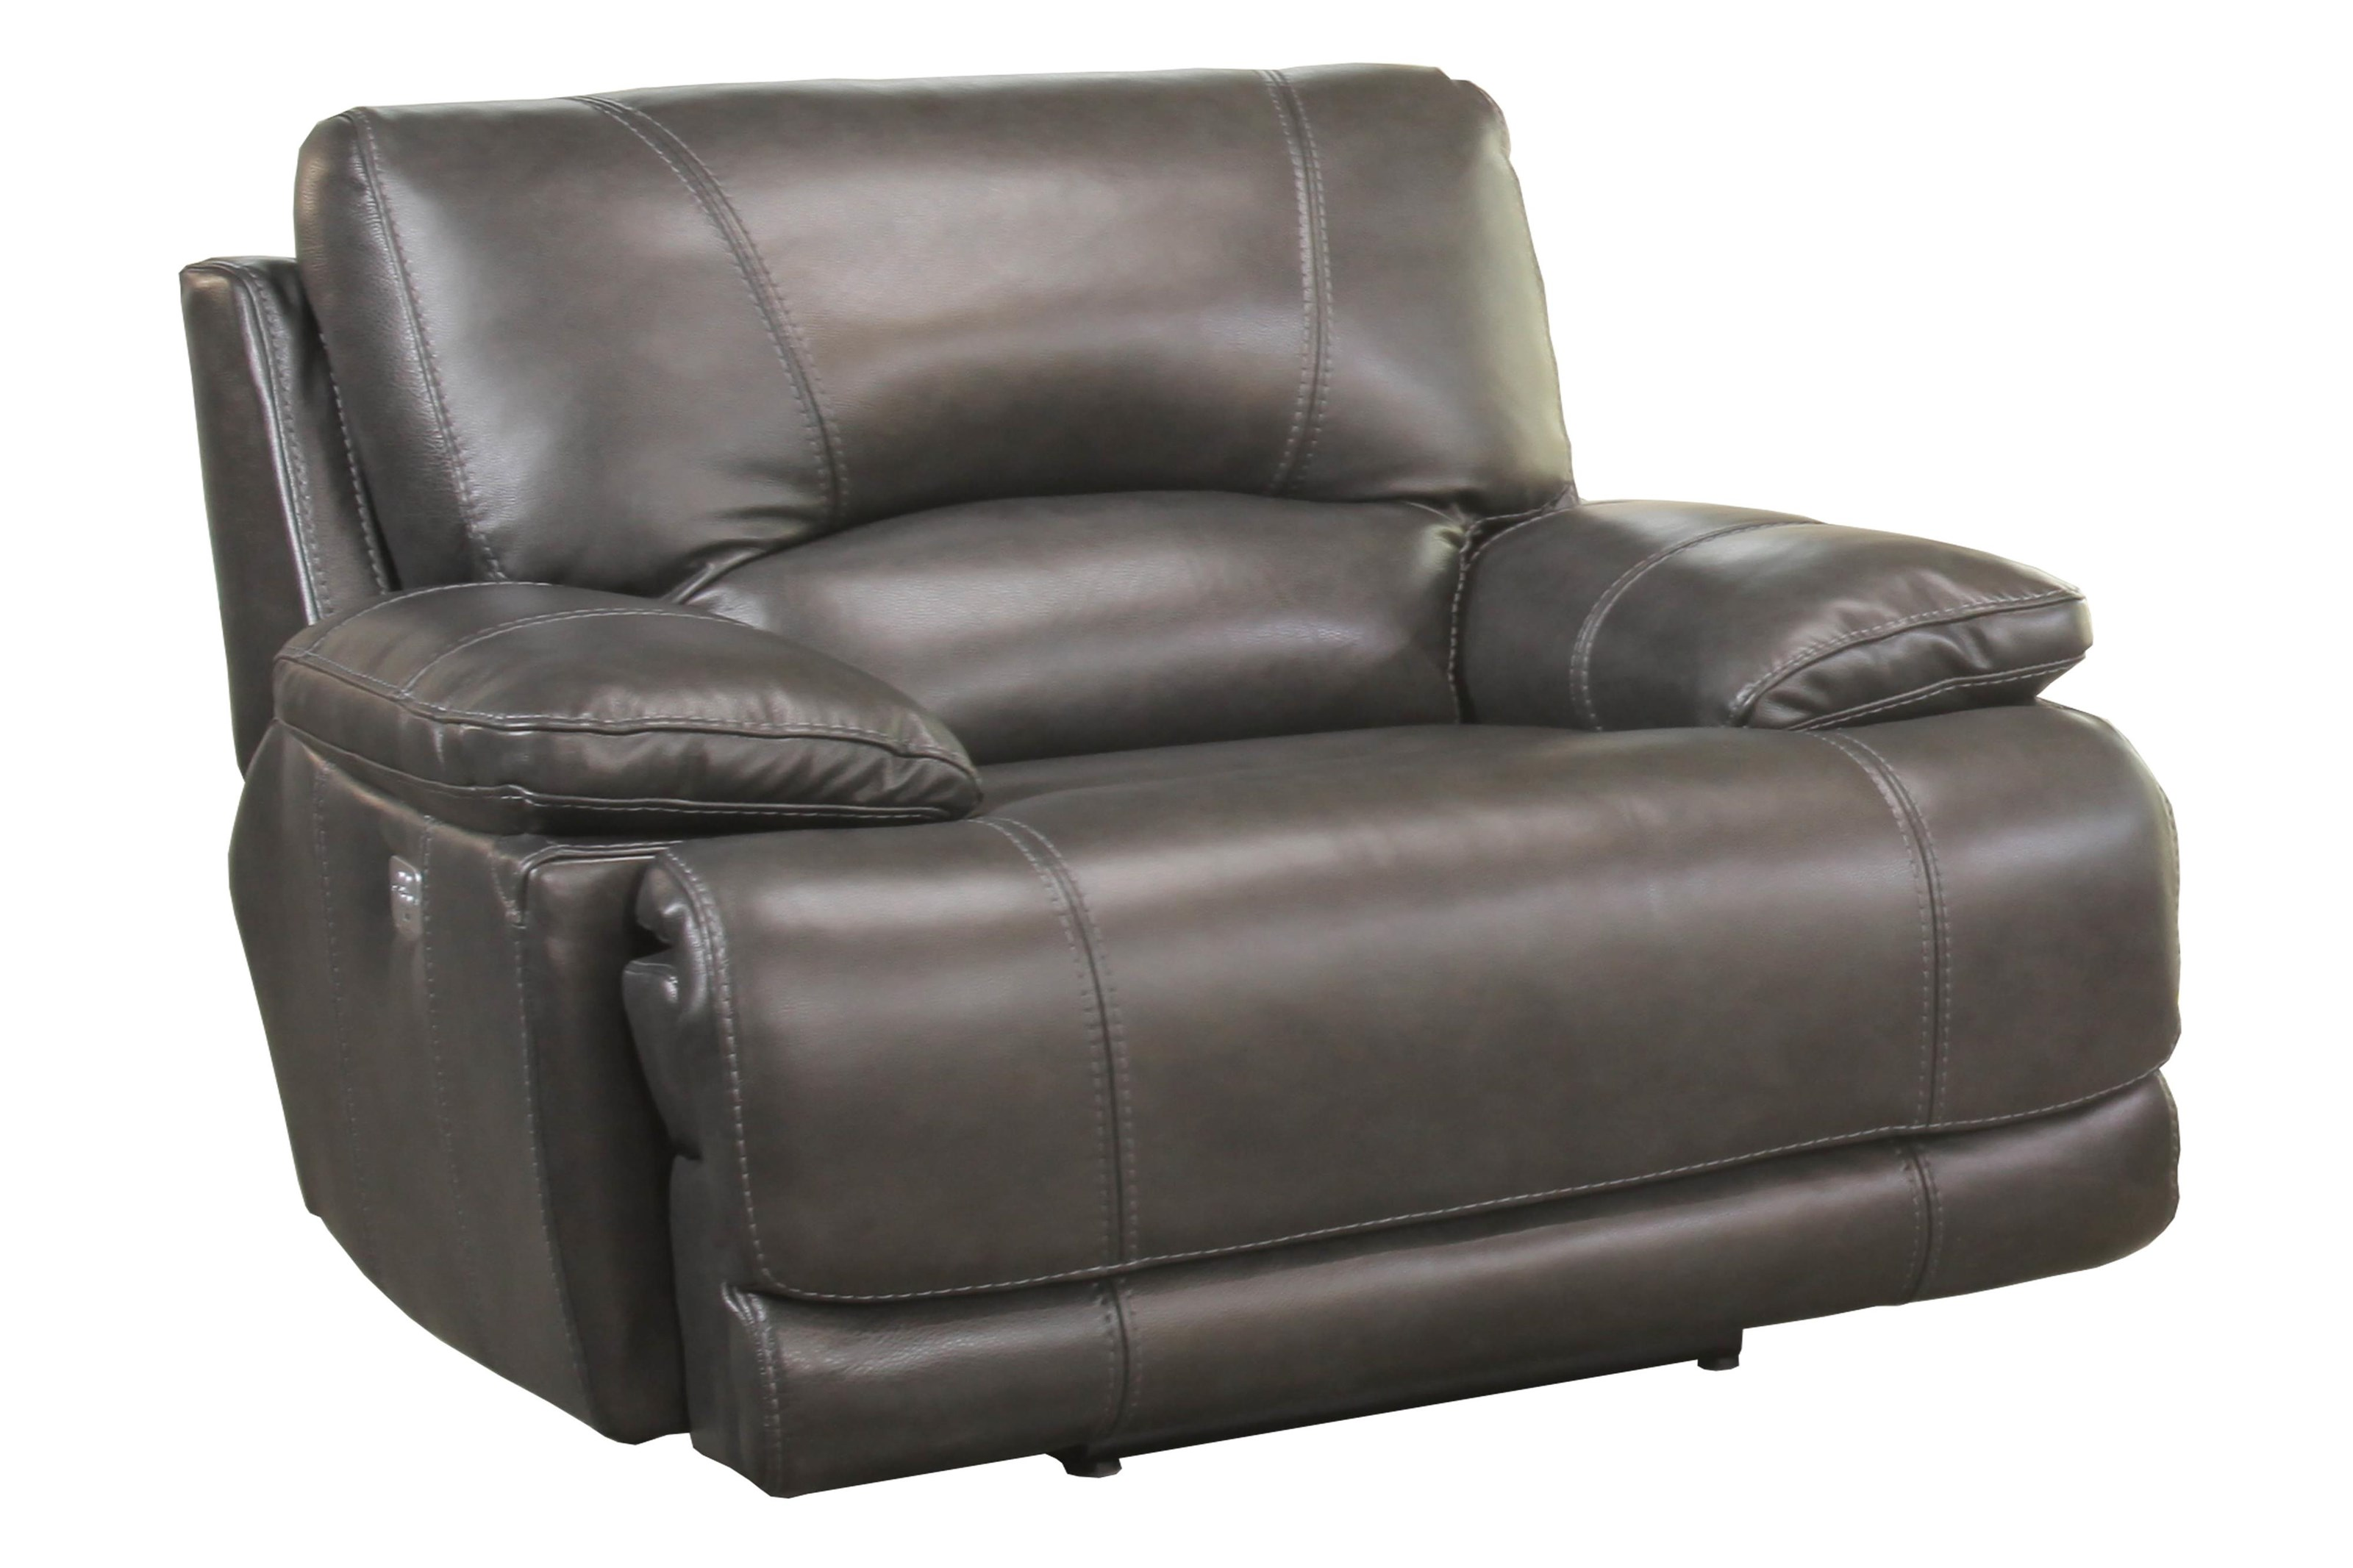 Cheers Sofa 5185 Power Recliner with Power Headrest - Item Number: 5185-L1-4044